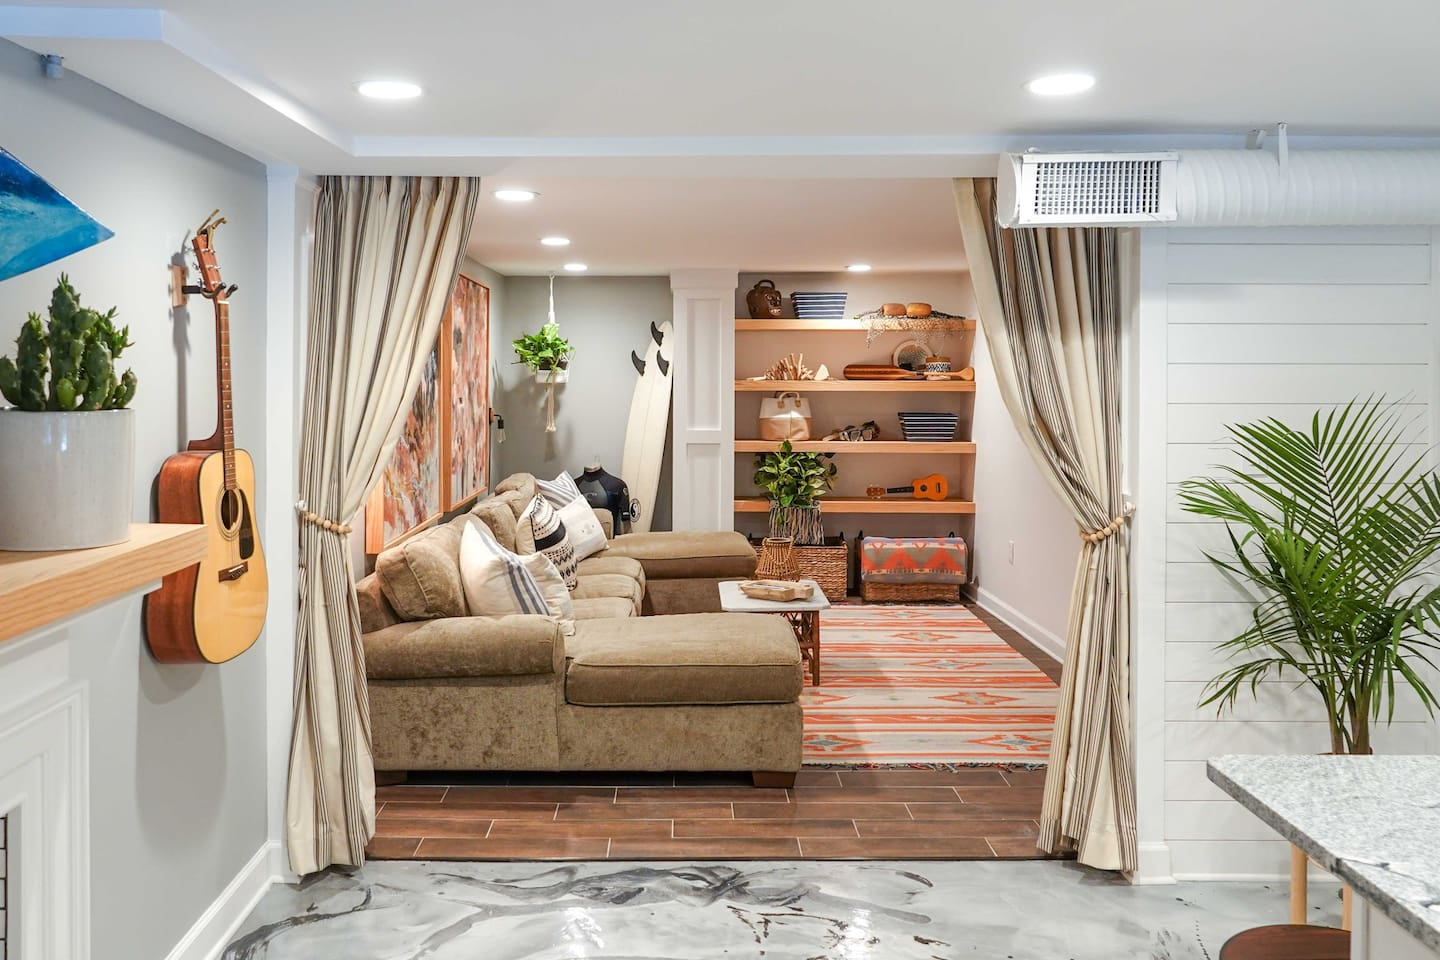 This cozy adventure shack offers coastal and outdoor-inspired living in a city setting. Complete with a living room, kitchen, two bedrooms, and an oversized bathroom, you'll have everything you need for an ideal stay.